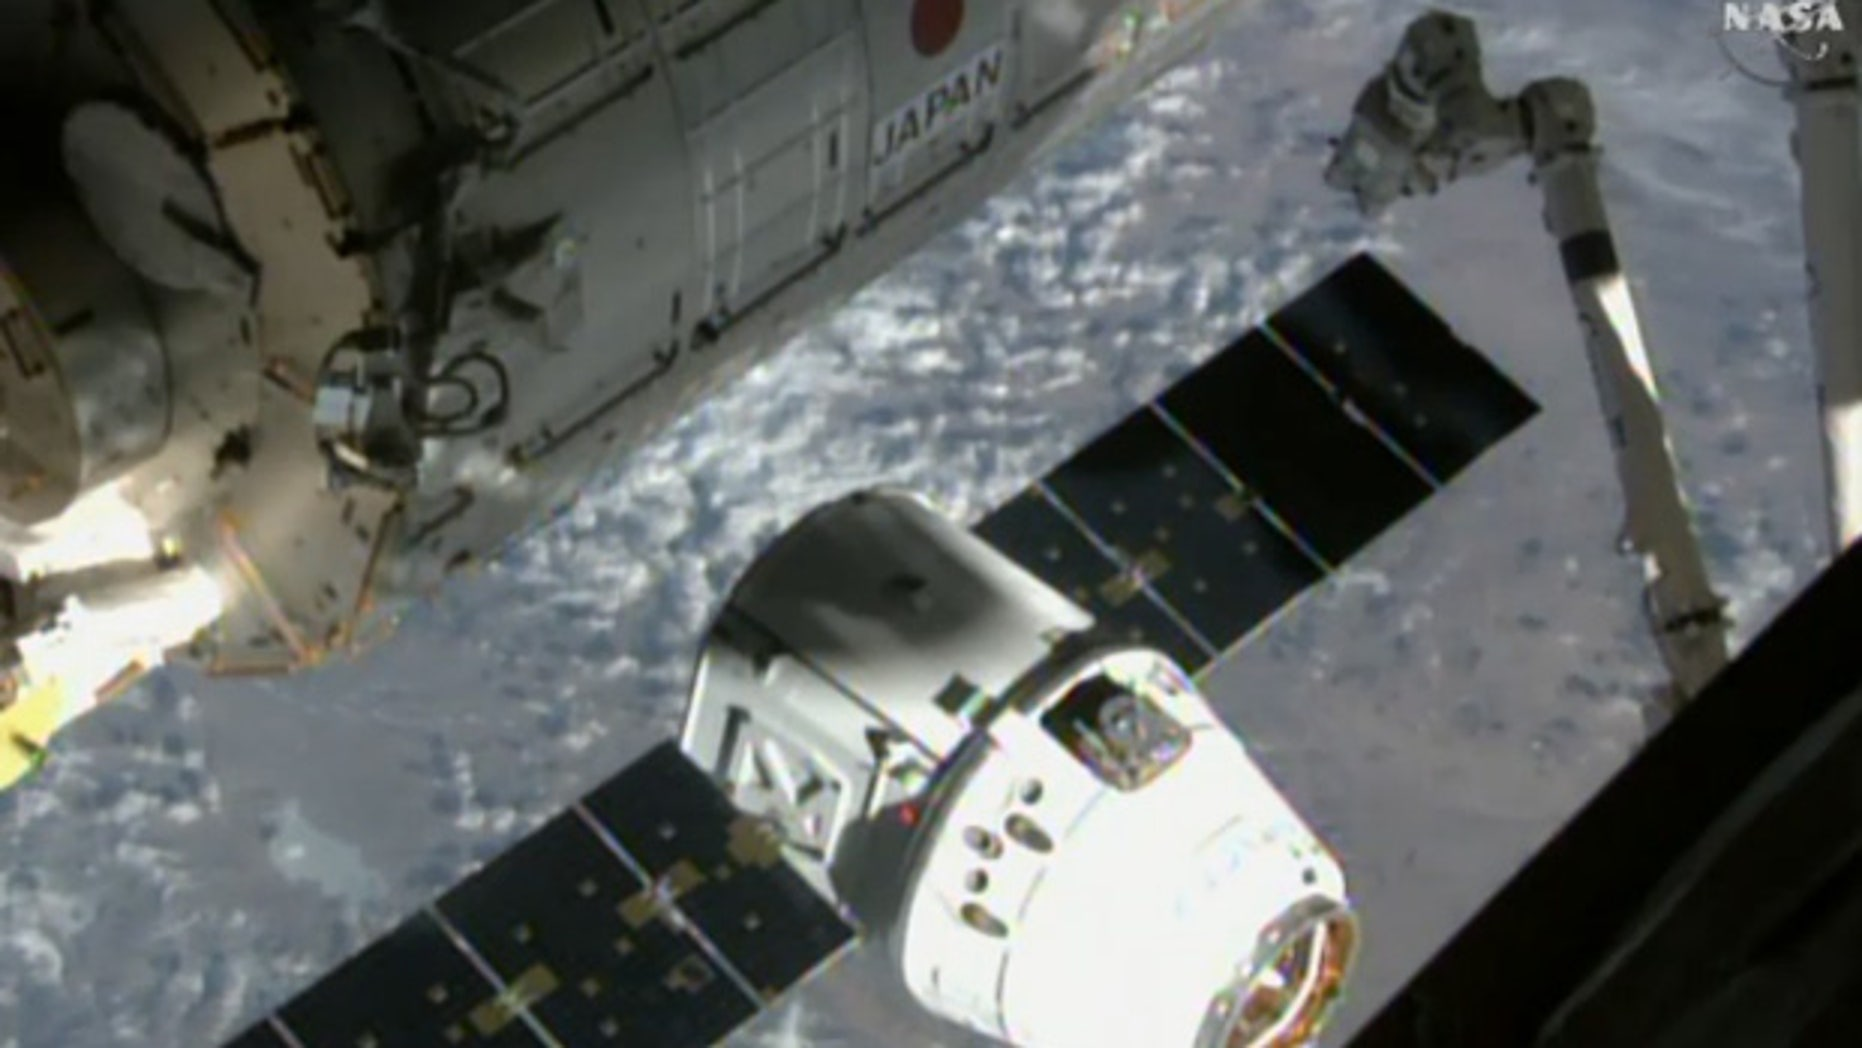 SpaceX's uncrewed Dragon cargo ship approaches the International Space Station (ISS) on April 17, 2015, in this still from a camera on the orbiting lab's exterior. This same Dragon arrived at the space station on Dec. 17, 2017.